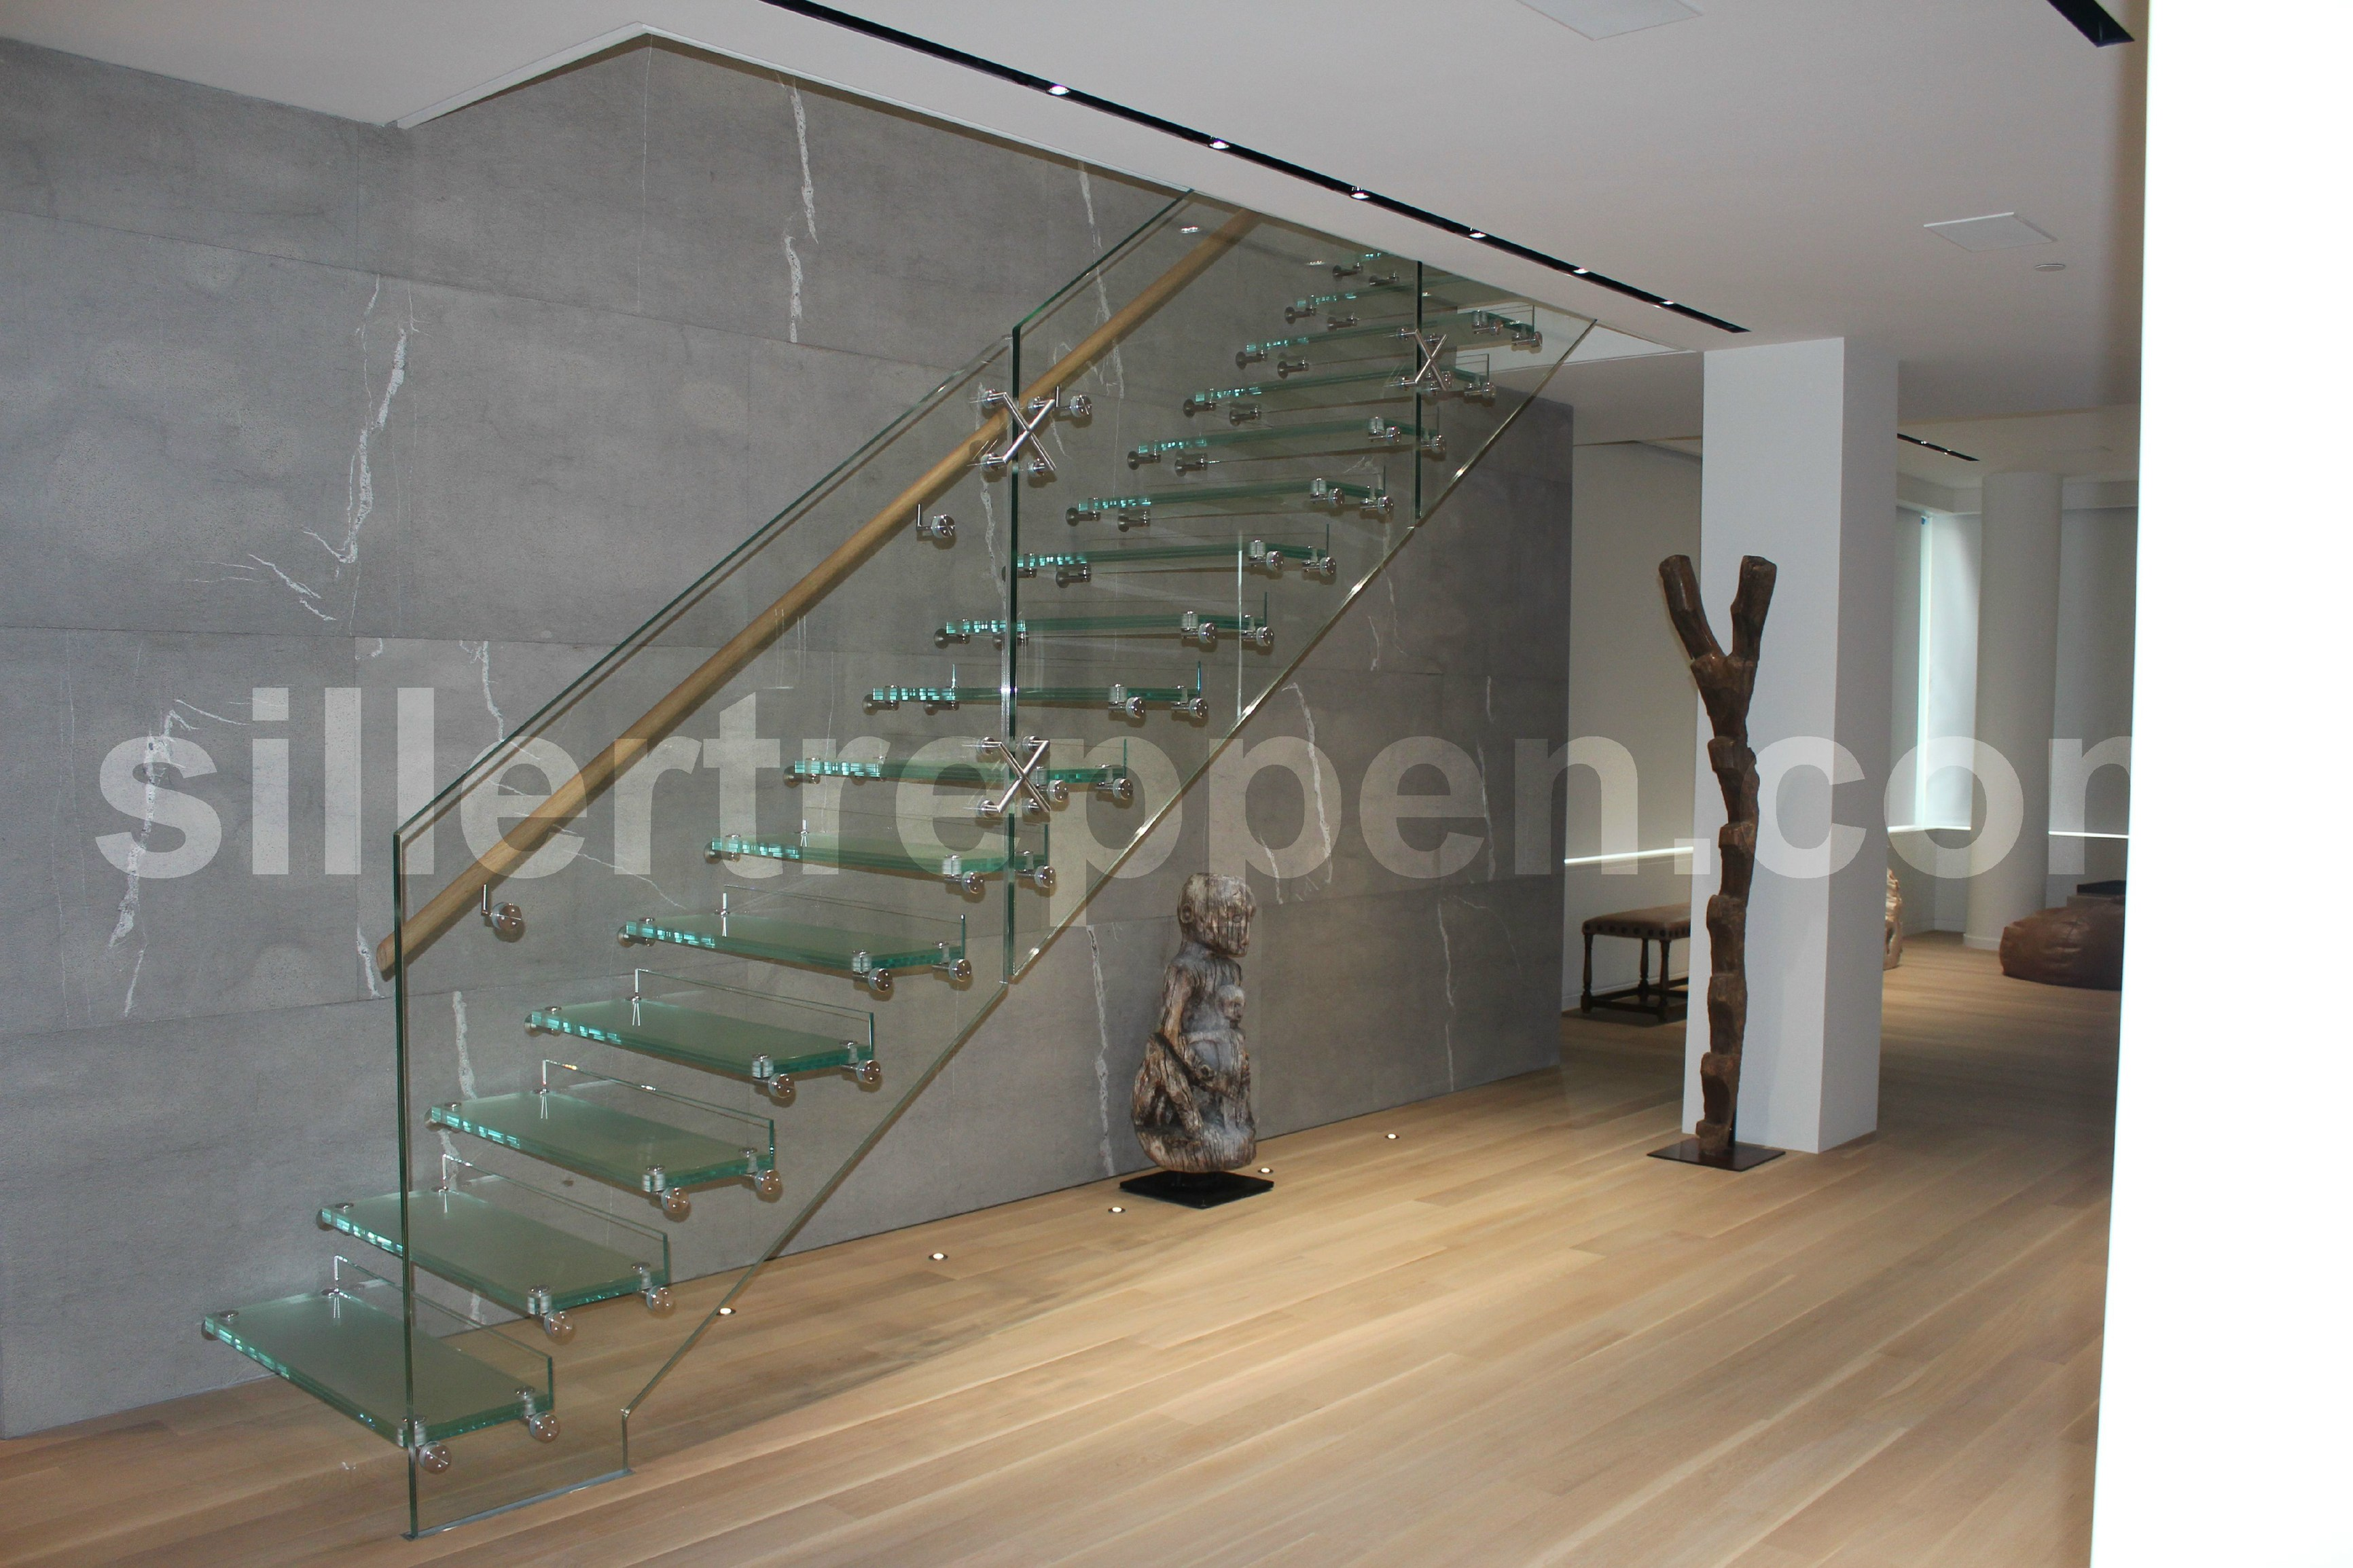 freitragende gerade offene treppe aus glas mistral glass by siller treppen design siller stairs. Black Bedroom Furniture Sets. Home Design Ideas